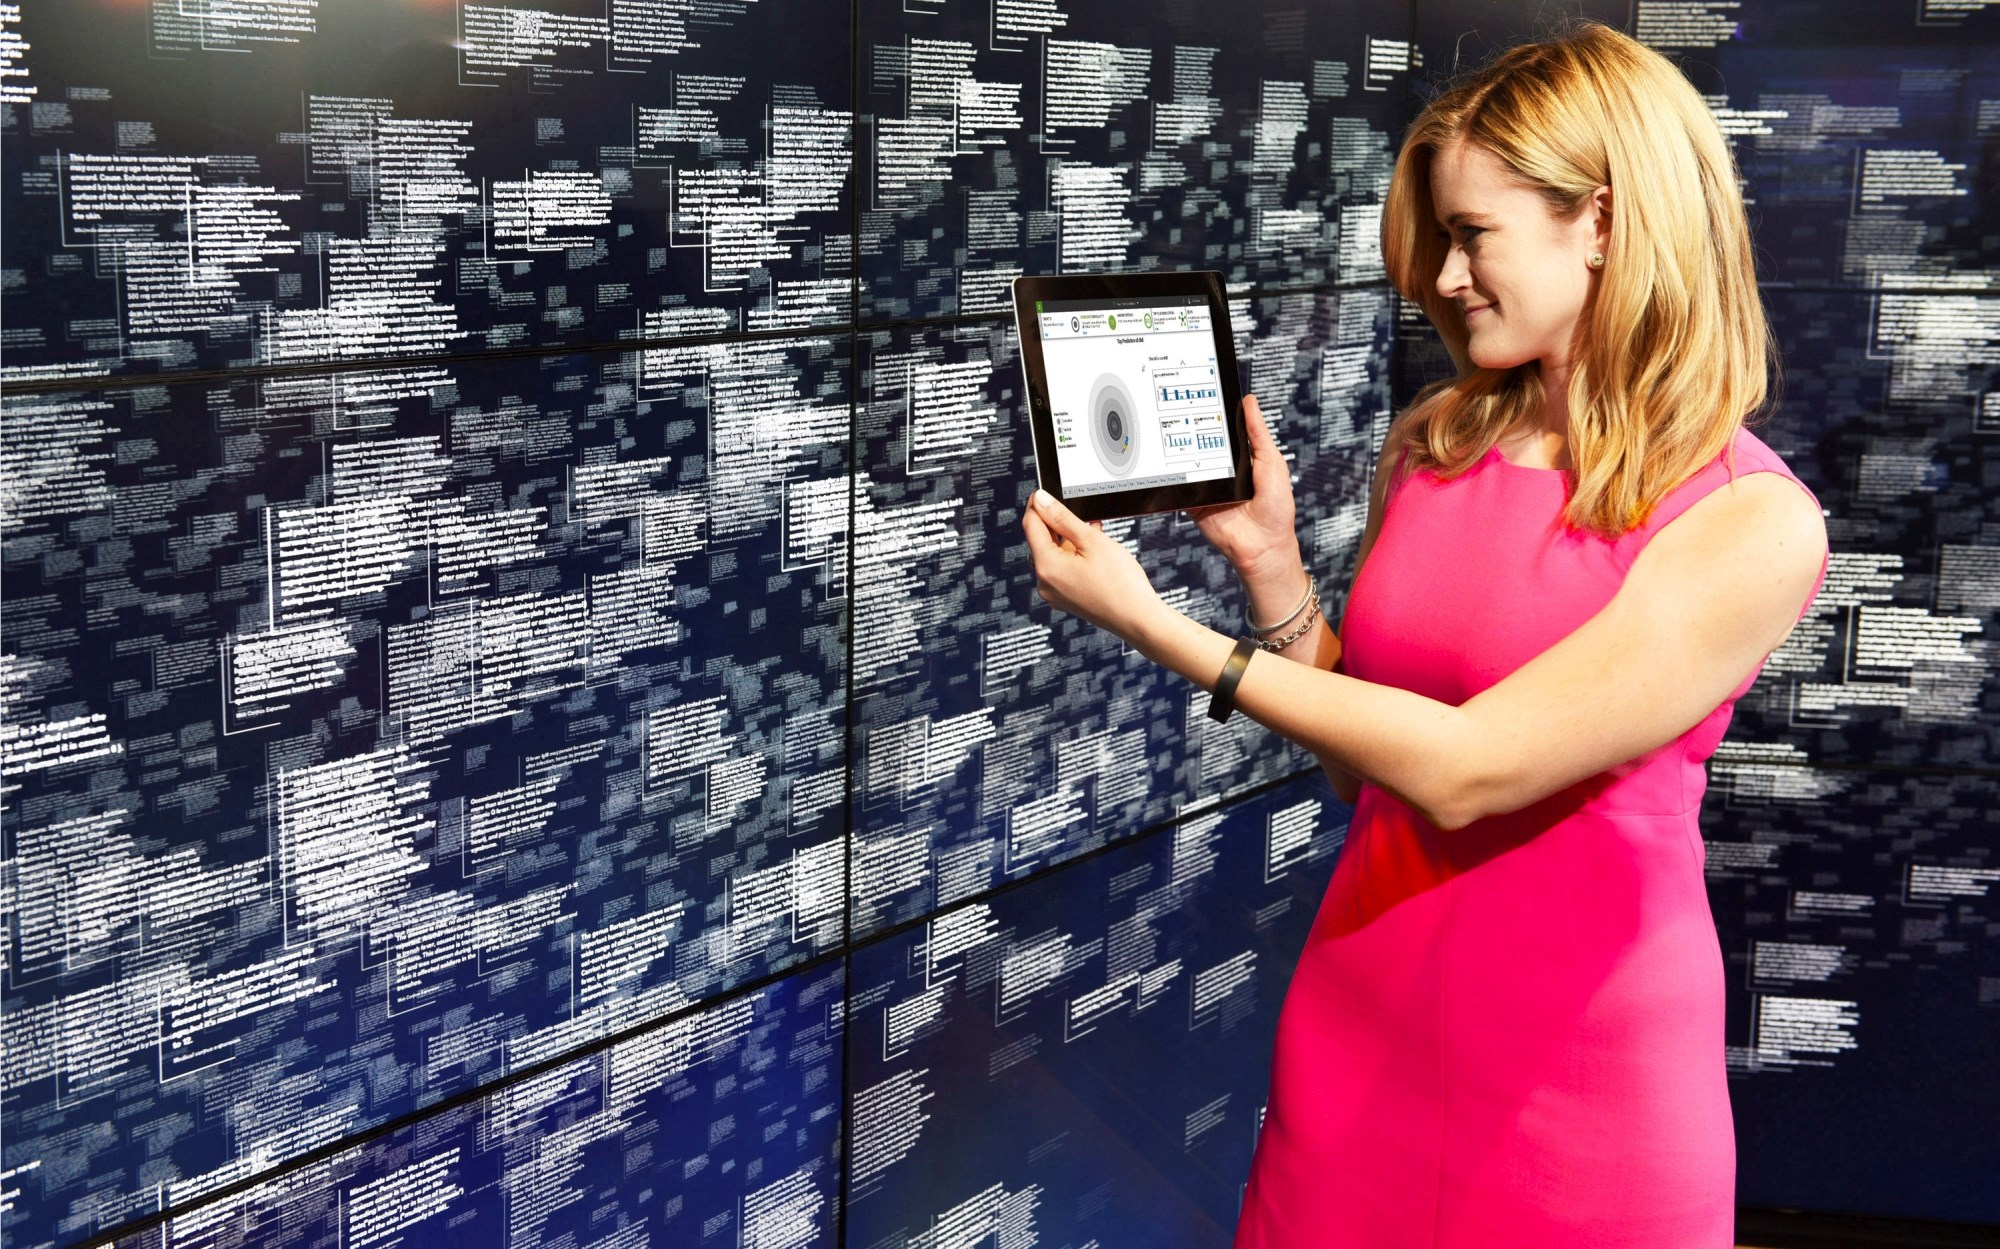 A project manager for IBM's new Watson health business unit demonstrates the company's healthcare data offering.